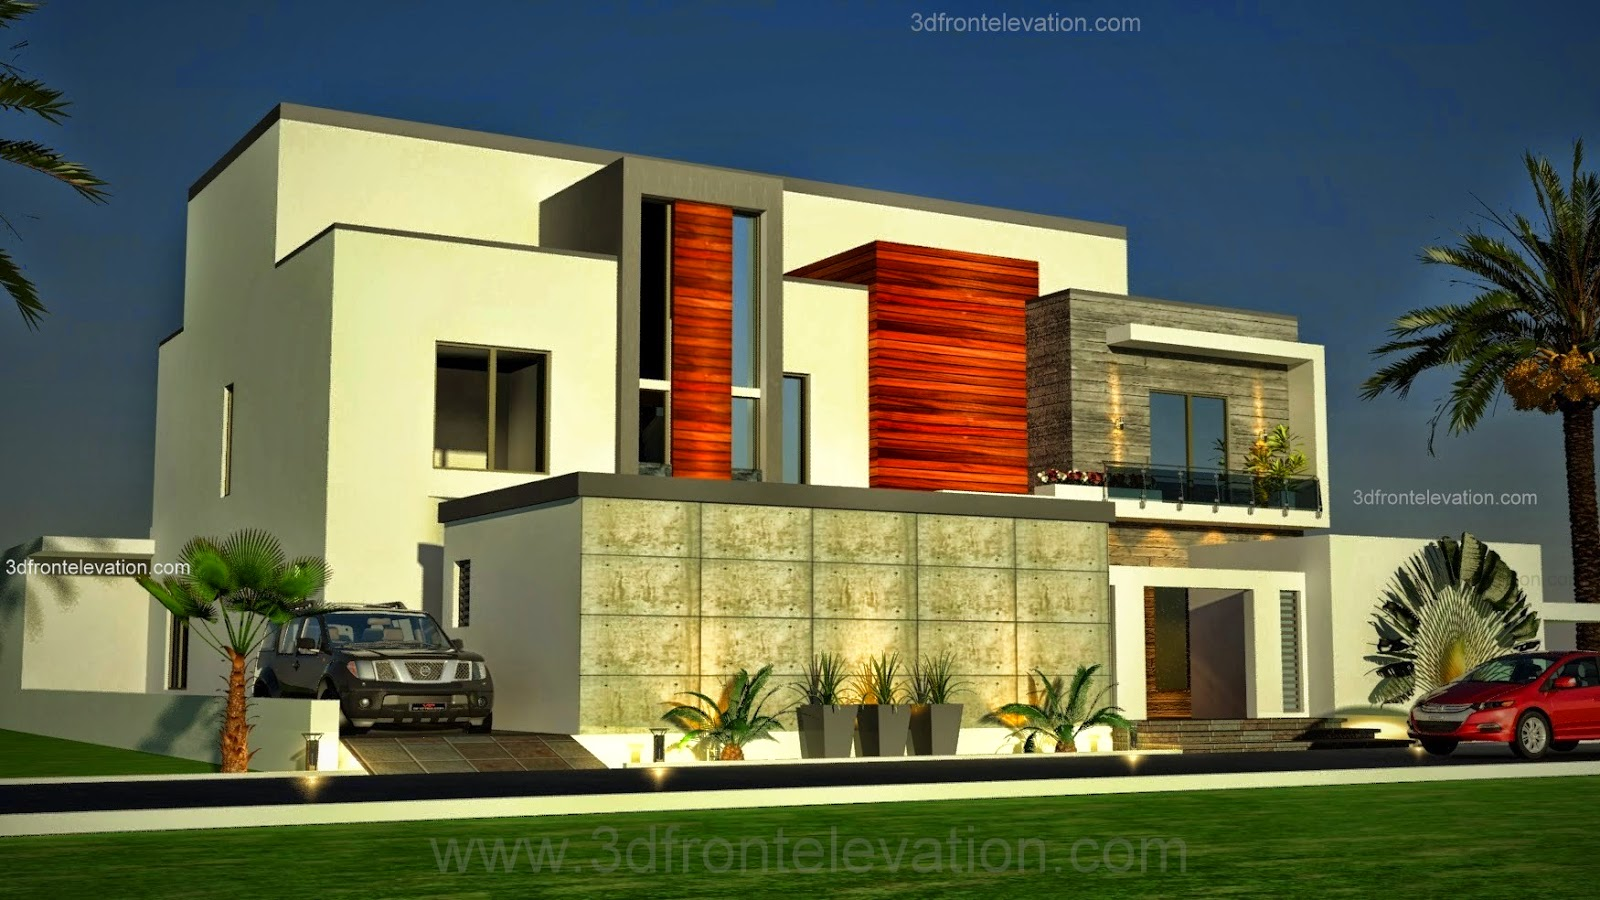 Modern Homes Elevations And Plans In Dubai Joy Studio